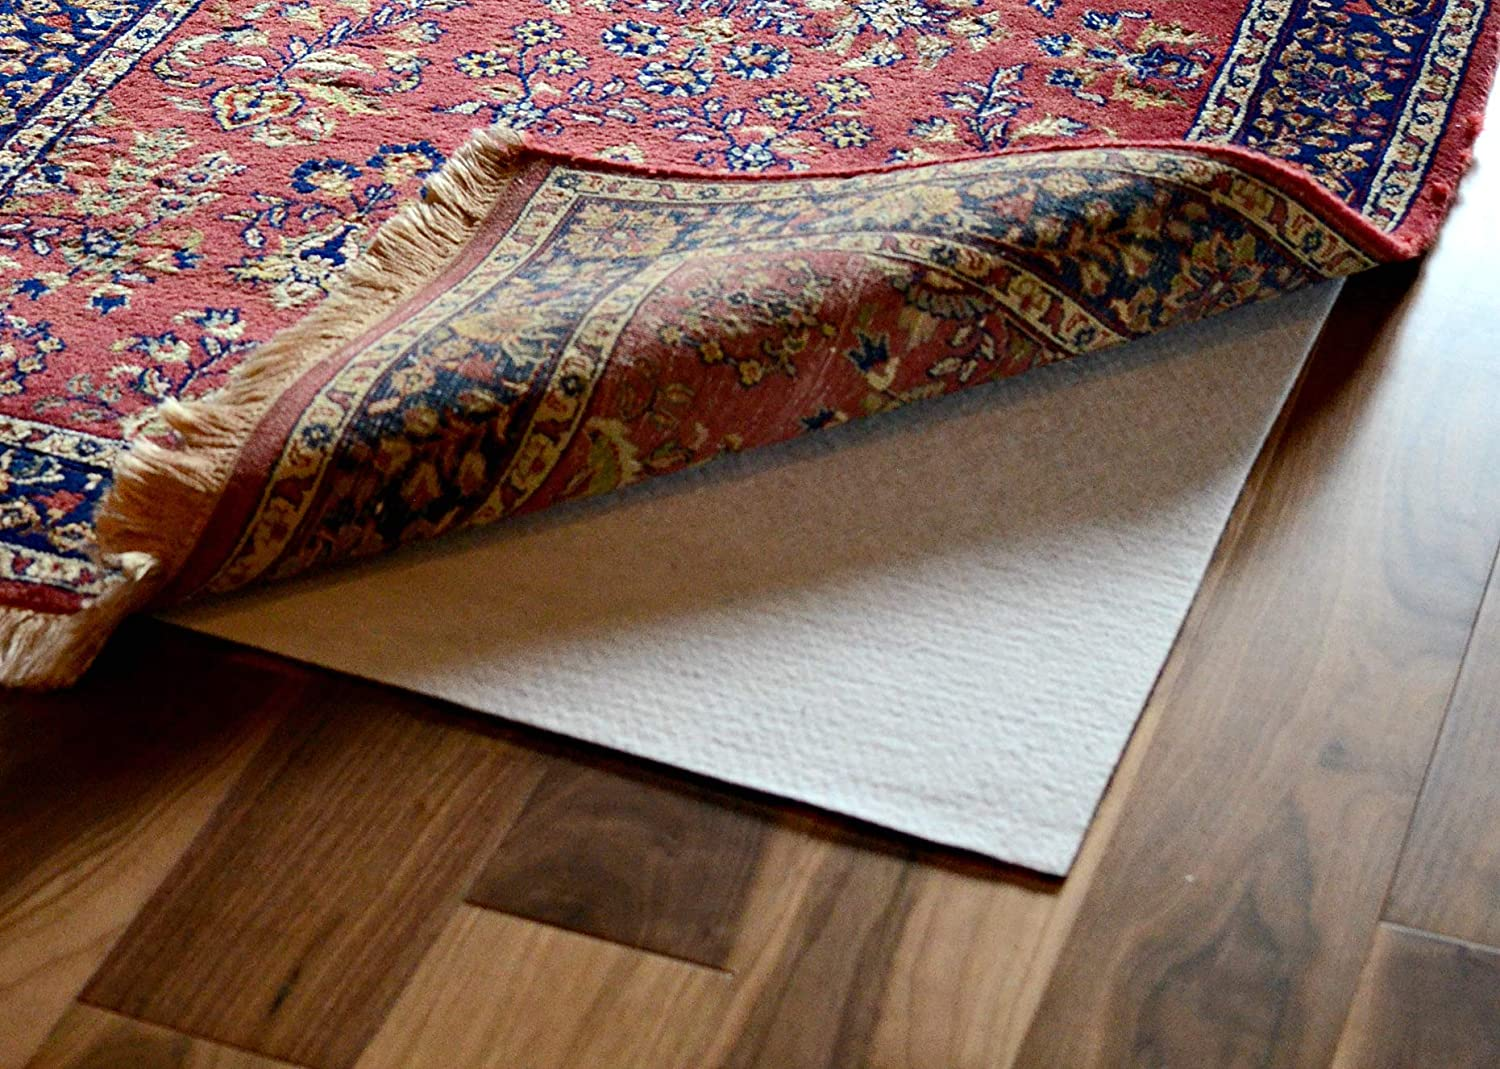 Hold-a-Rug 10 x 14 Nonskid, Nonslip Rug Pad, 1/8 Thick, Safe for All Floors and Carpet